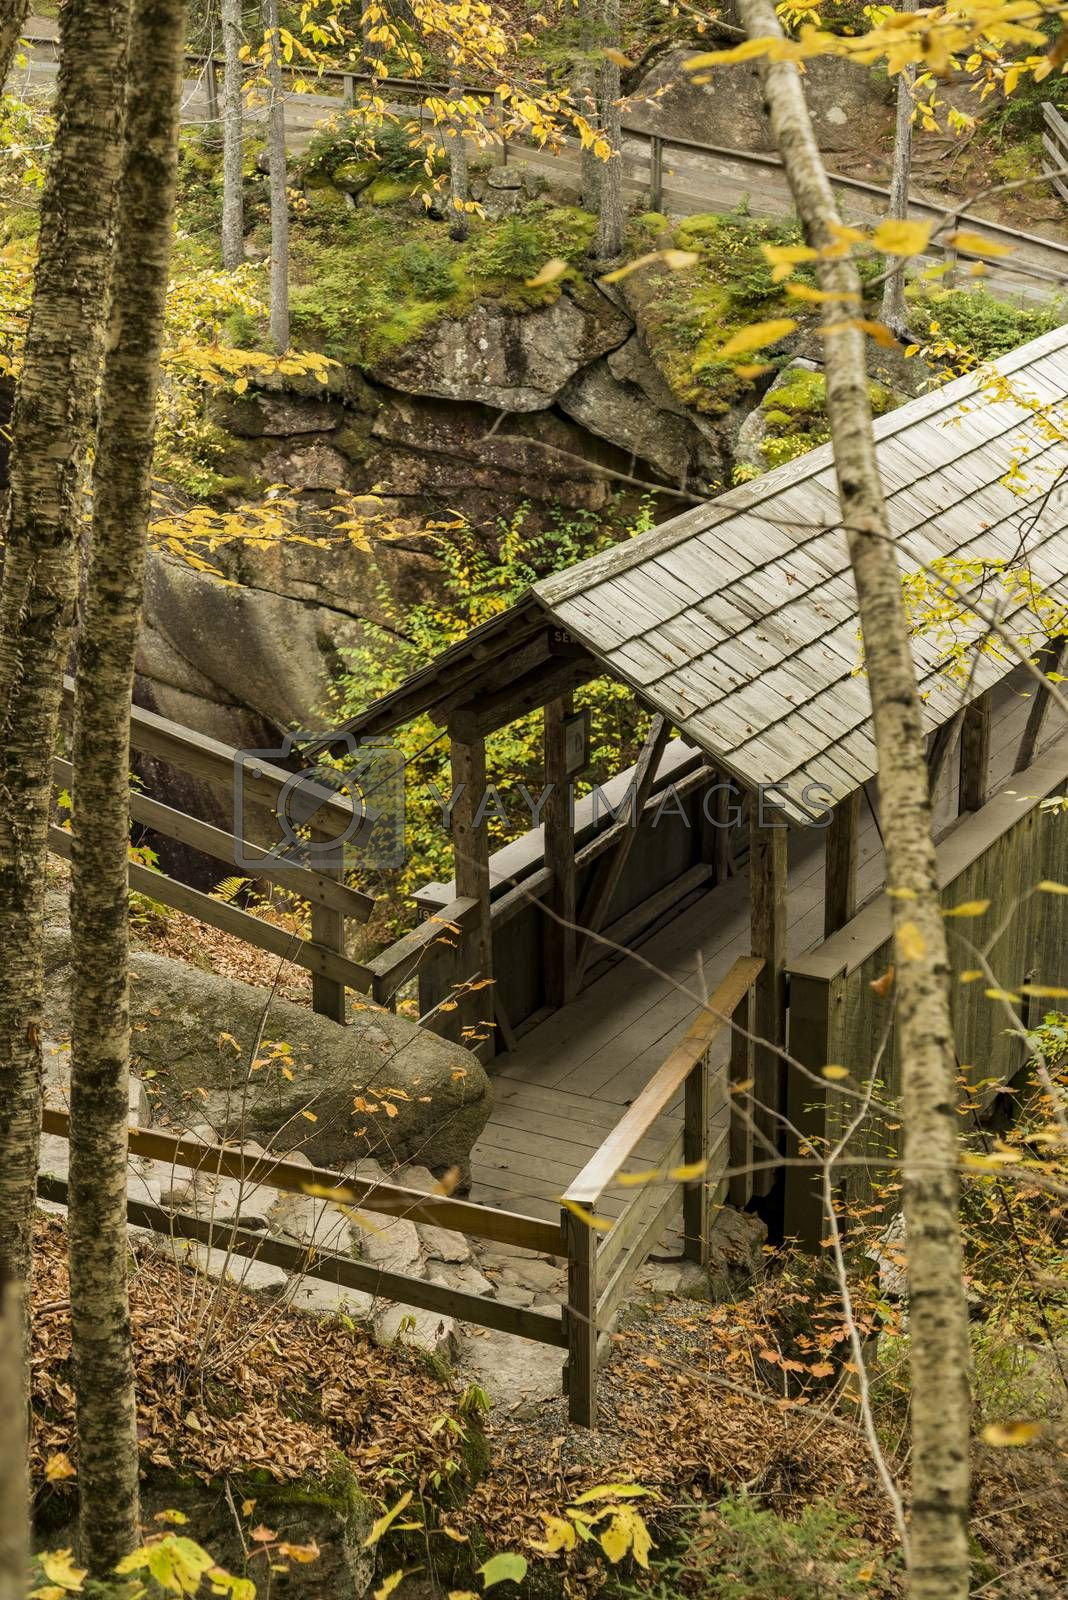 Sentinel Pine Covered Bridge in Franconia Notch State Park, New Hampshire